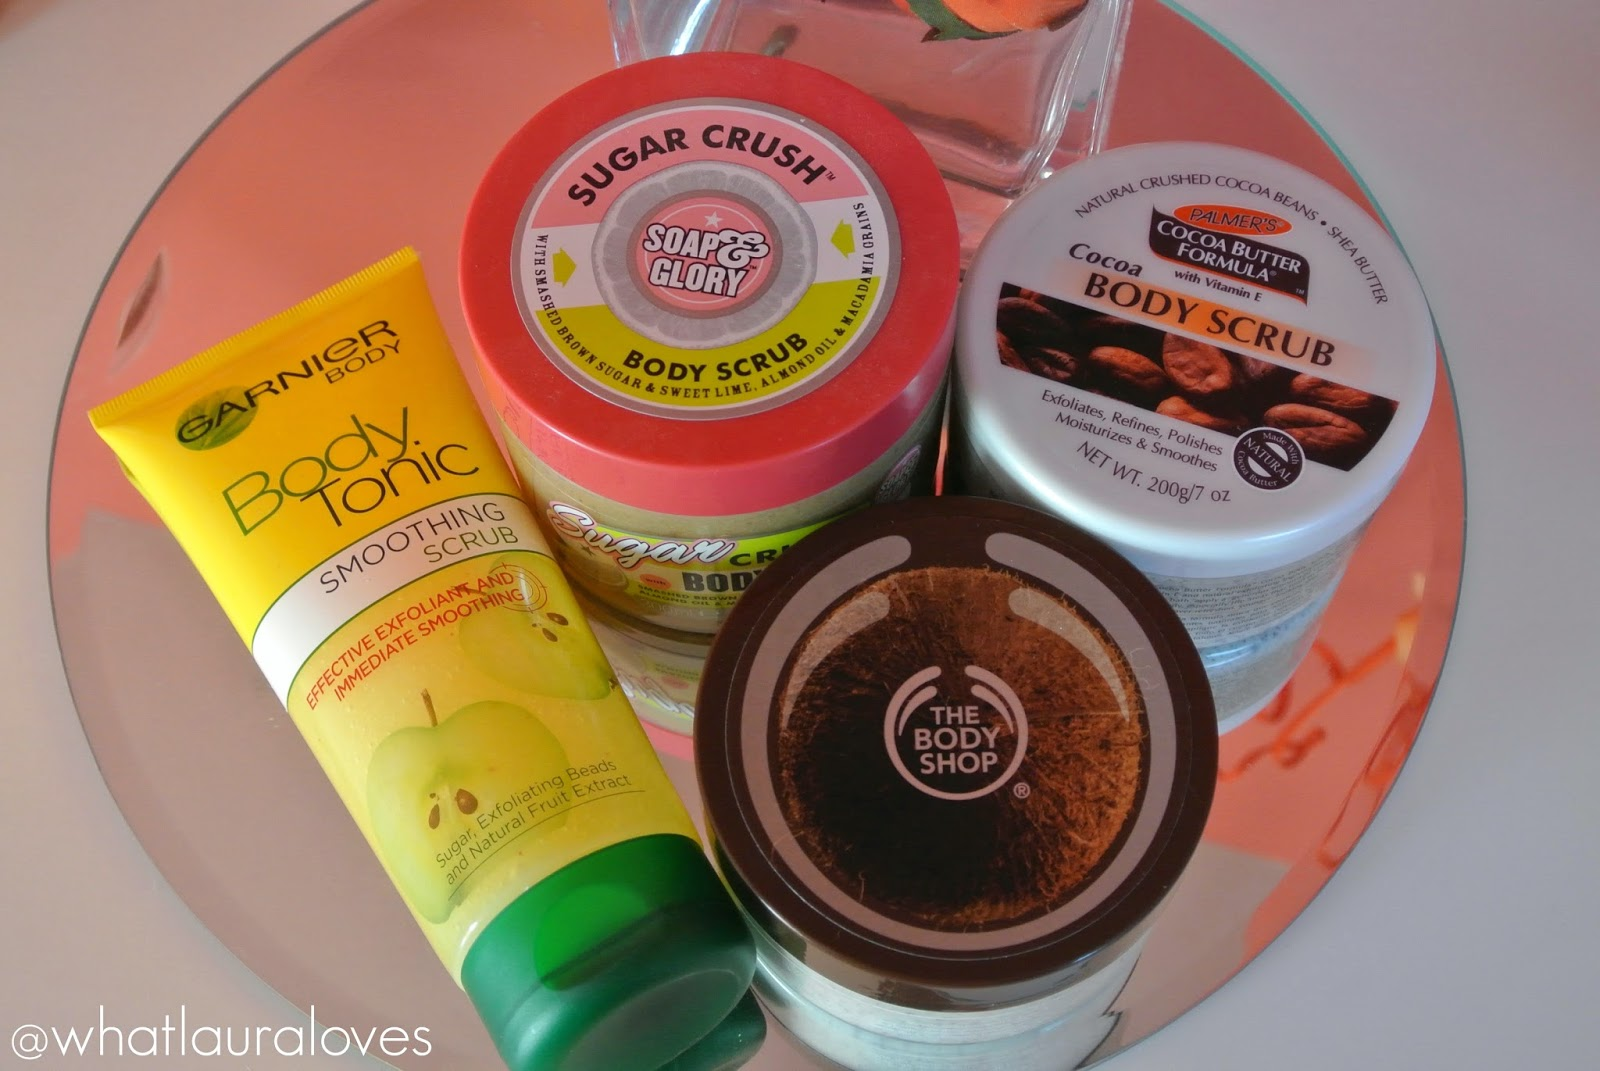 Soap and Glory, Garnier, The Body Shop, Palmers Cocoa Butter, Affordable Drugstore Body Scrubs Exfoliators